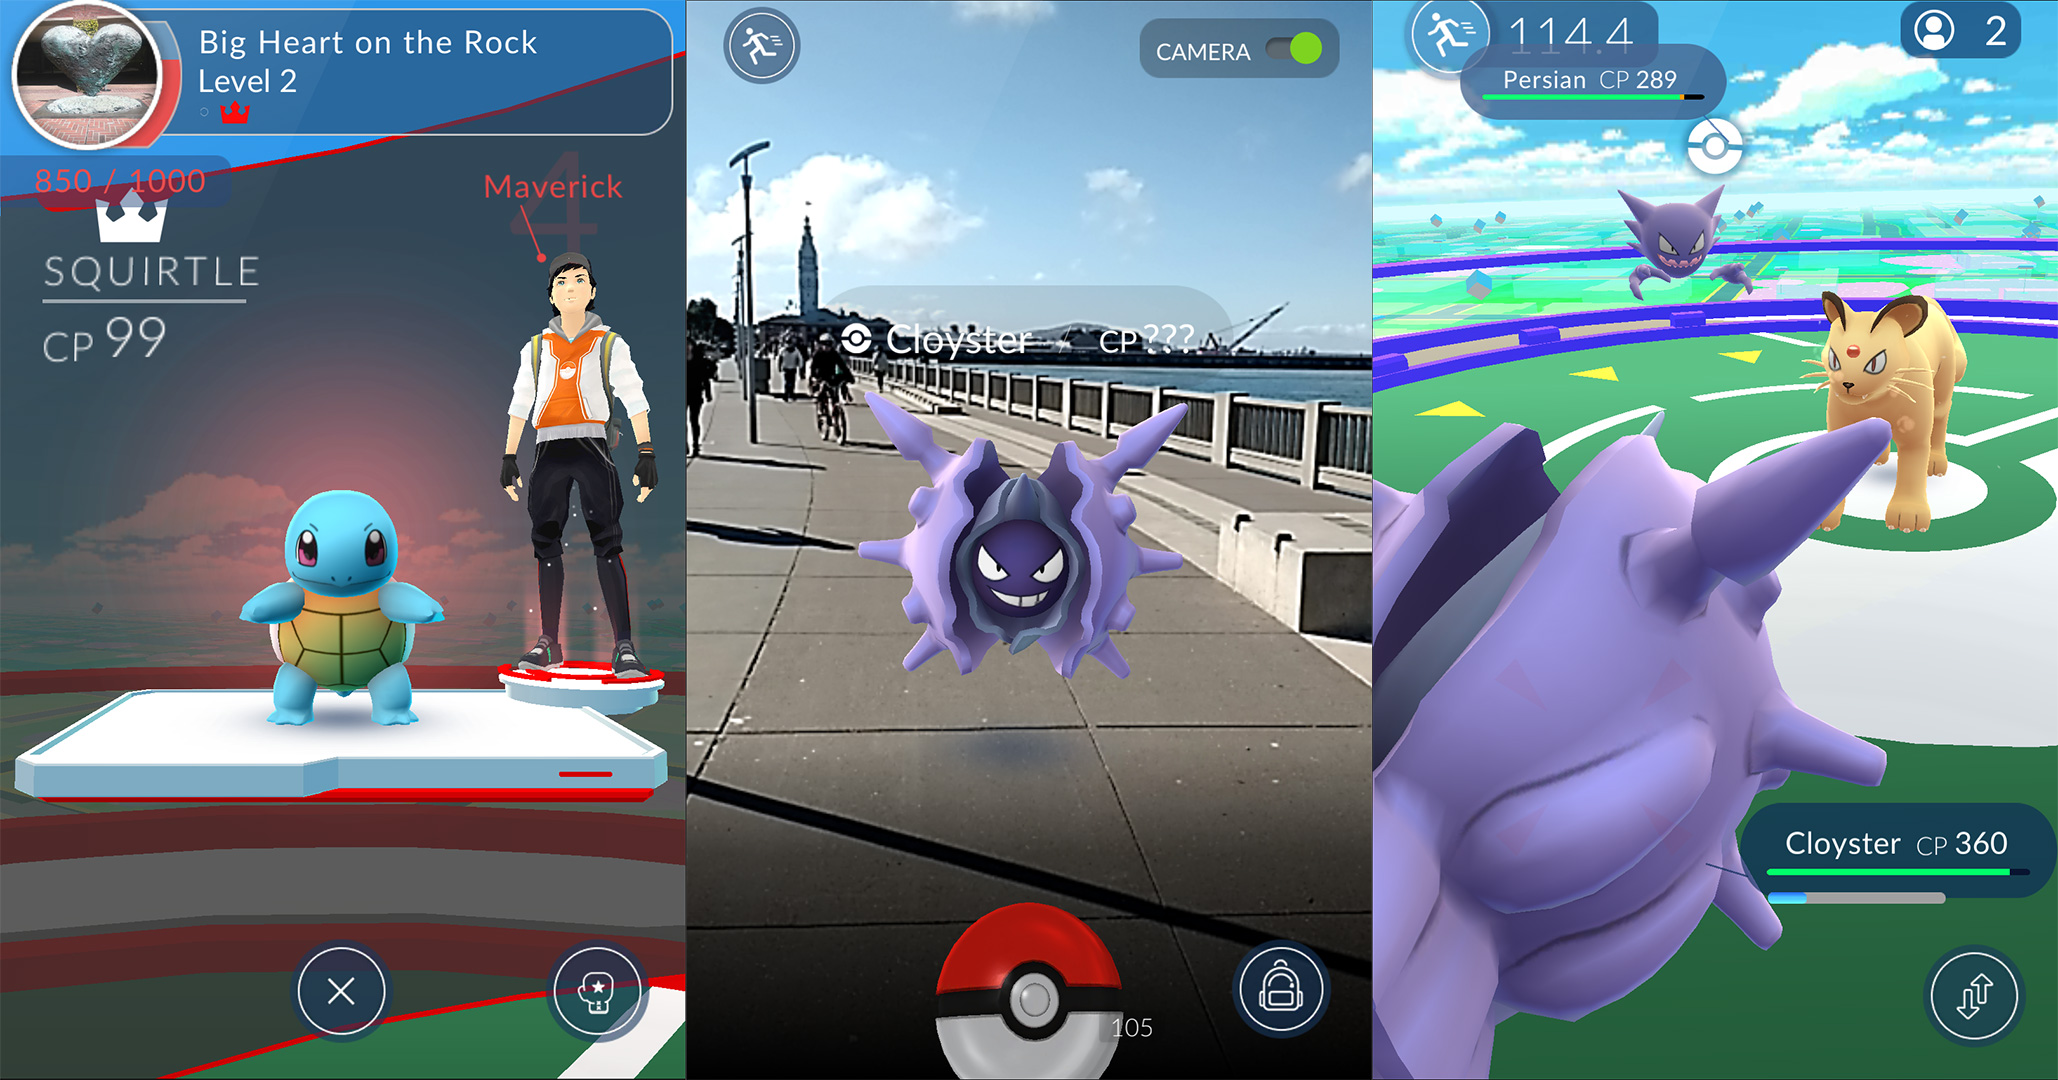 A week with Pokémon Go shows potential and problems